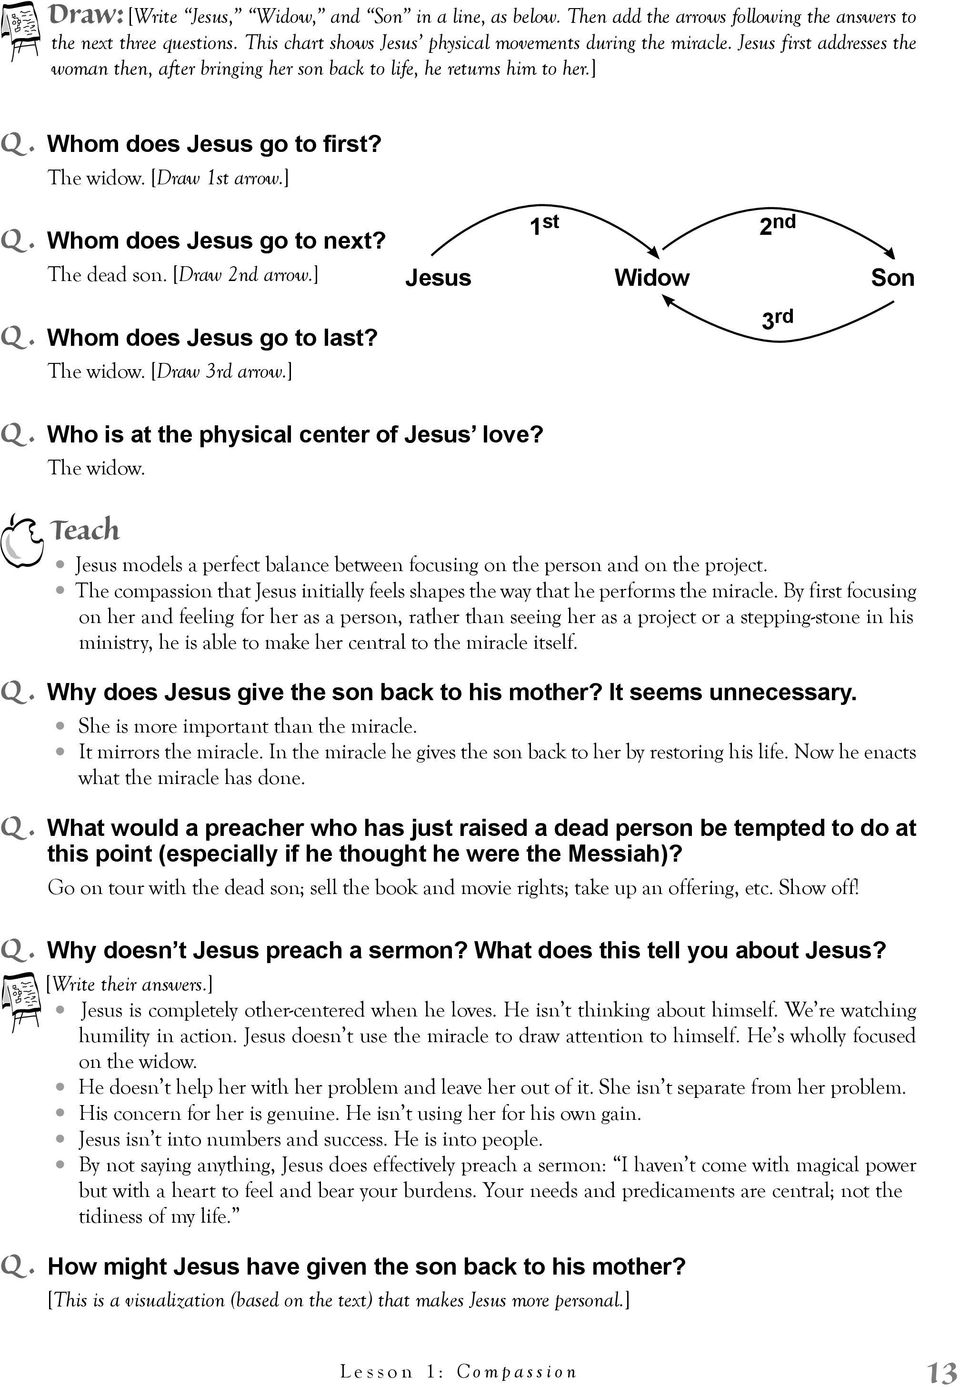 The dead son. [Draw 2nd arrow.] Jesus 1 st 2 nd Widow Son Q. Whom does Jesus go to last? The widow. [Draw 3rd arrow.] 3 rd Q. Who is at the physical center of Jesus love? The widow. Teach Jesus models a perfect balance between focusing on the person and on the project.